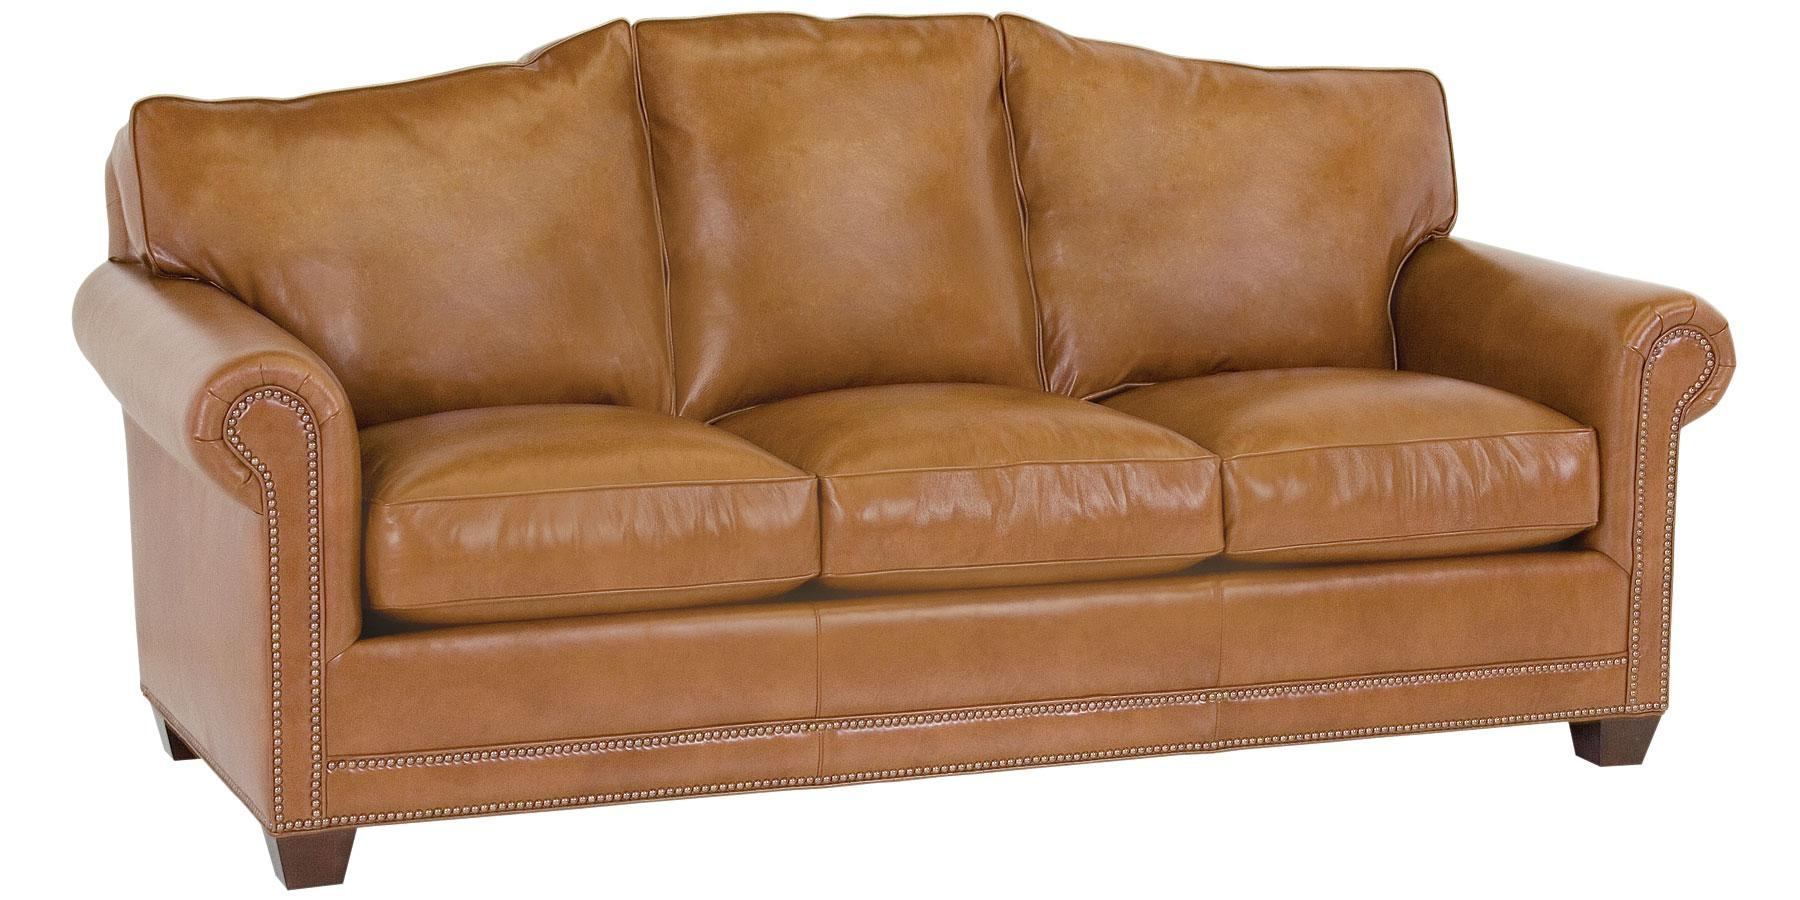 Finest 20 Top Camel Color Leather Sofas | Sofa Ideas DM54